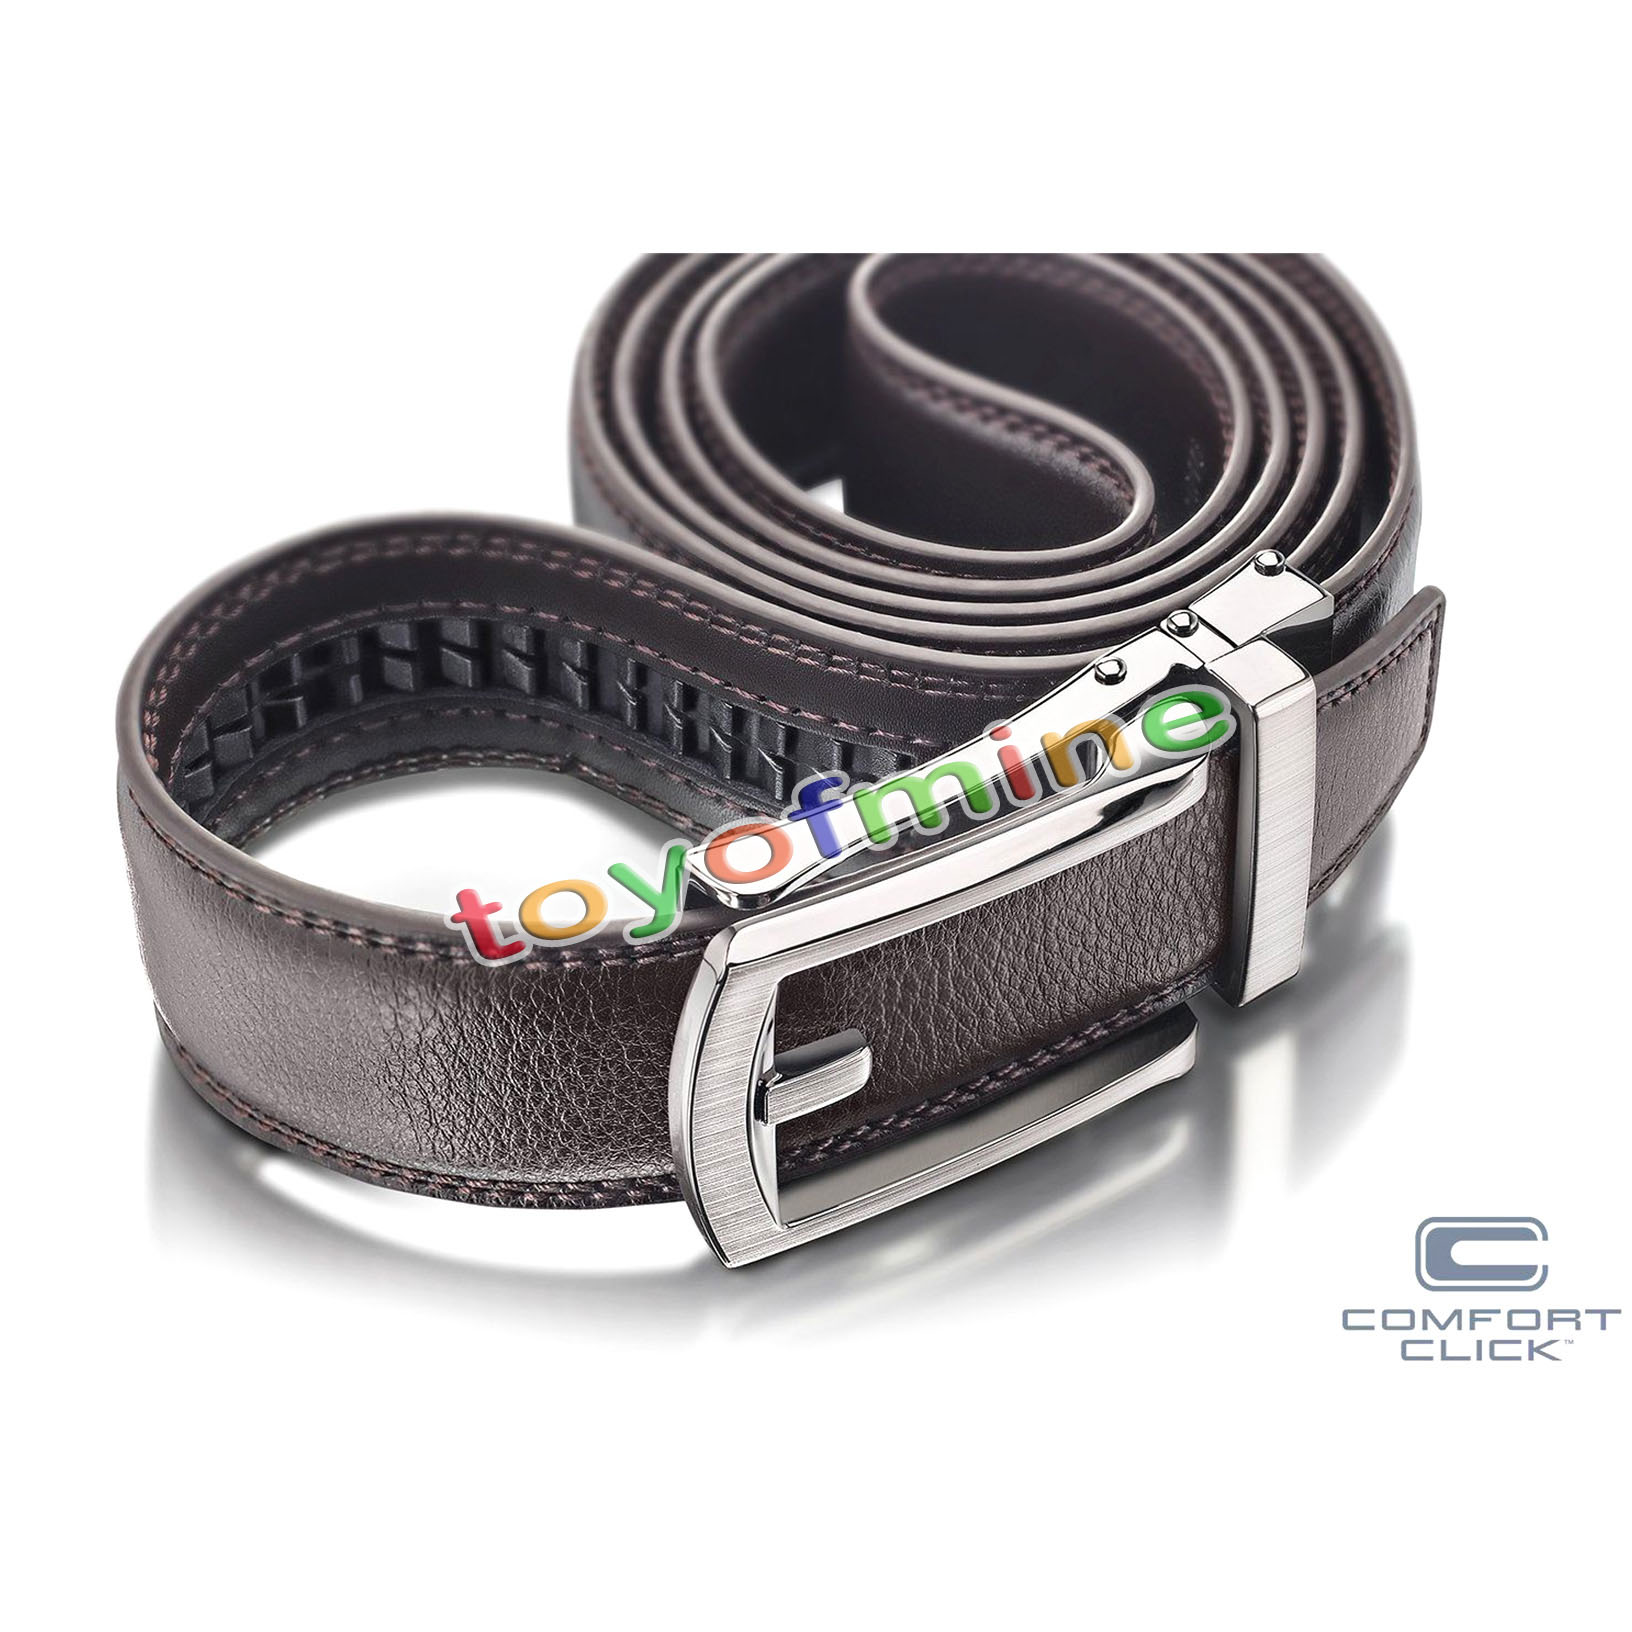 New Comfort Click Belt For Men Black Or Brown As Seen On